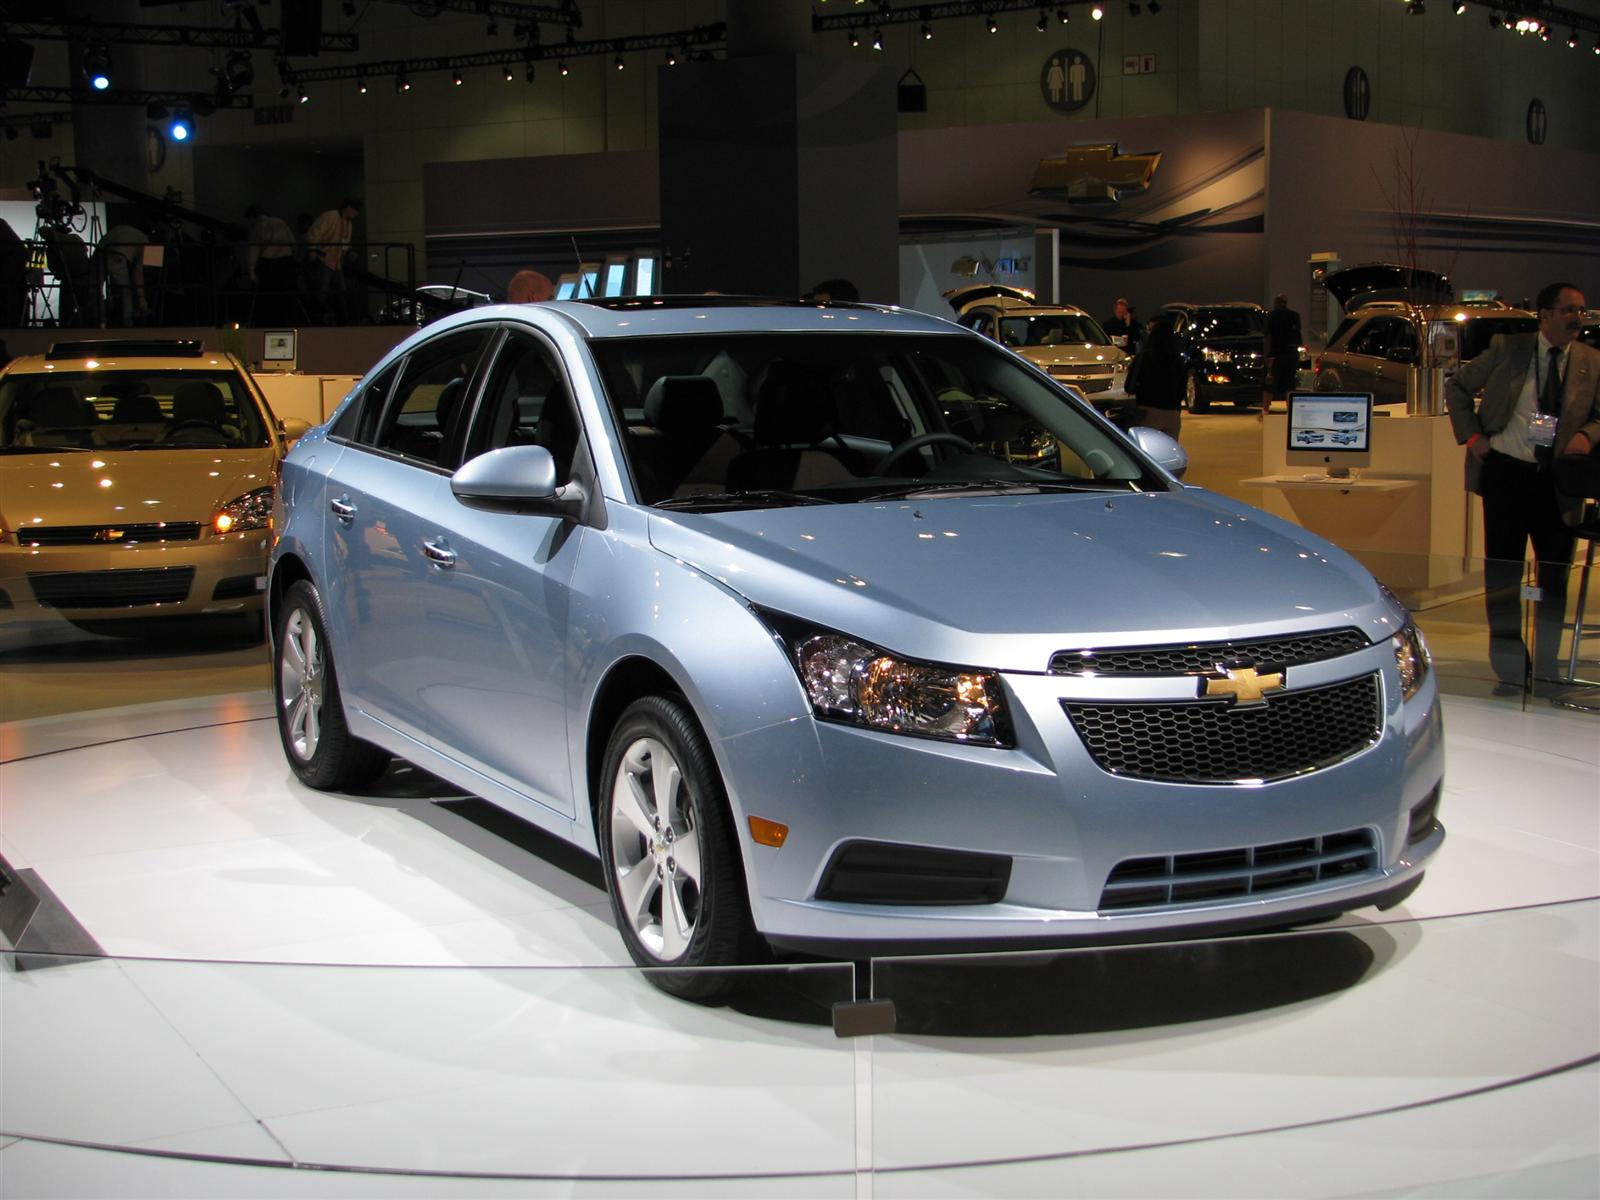 2011 chevrolet cruze live from the l a show floor. Black Bedroom Furniture Sets. Home Design Ideas